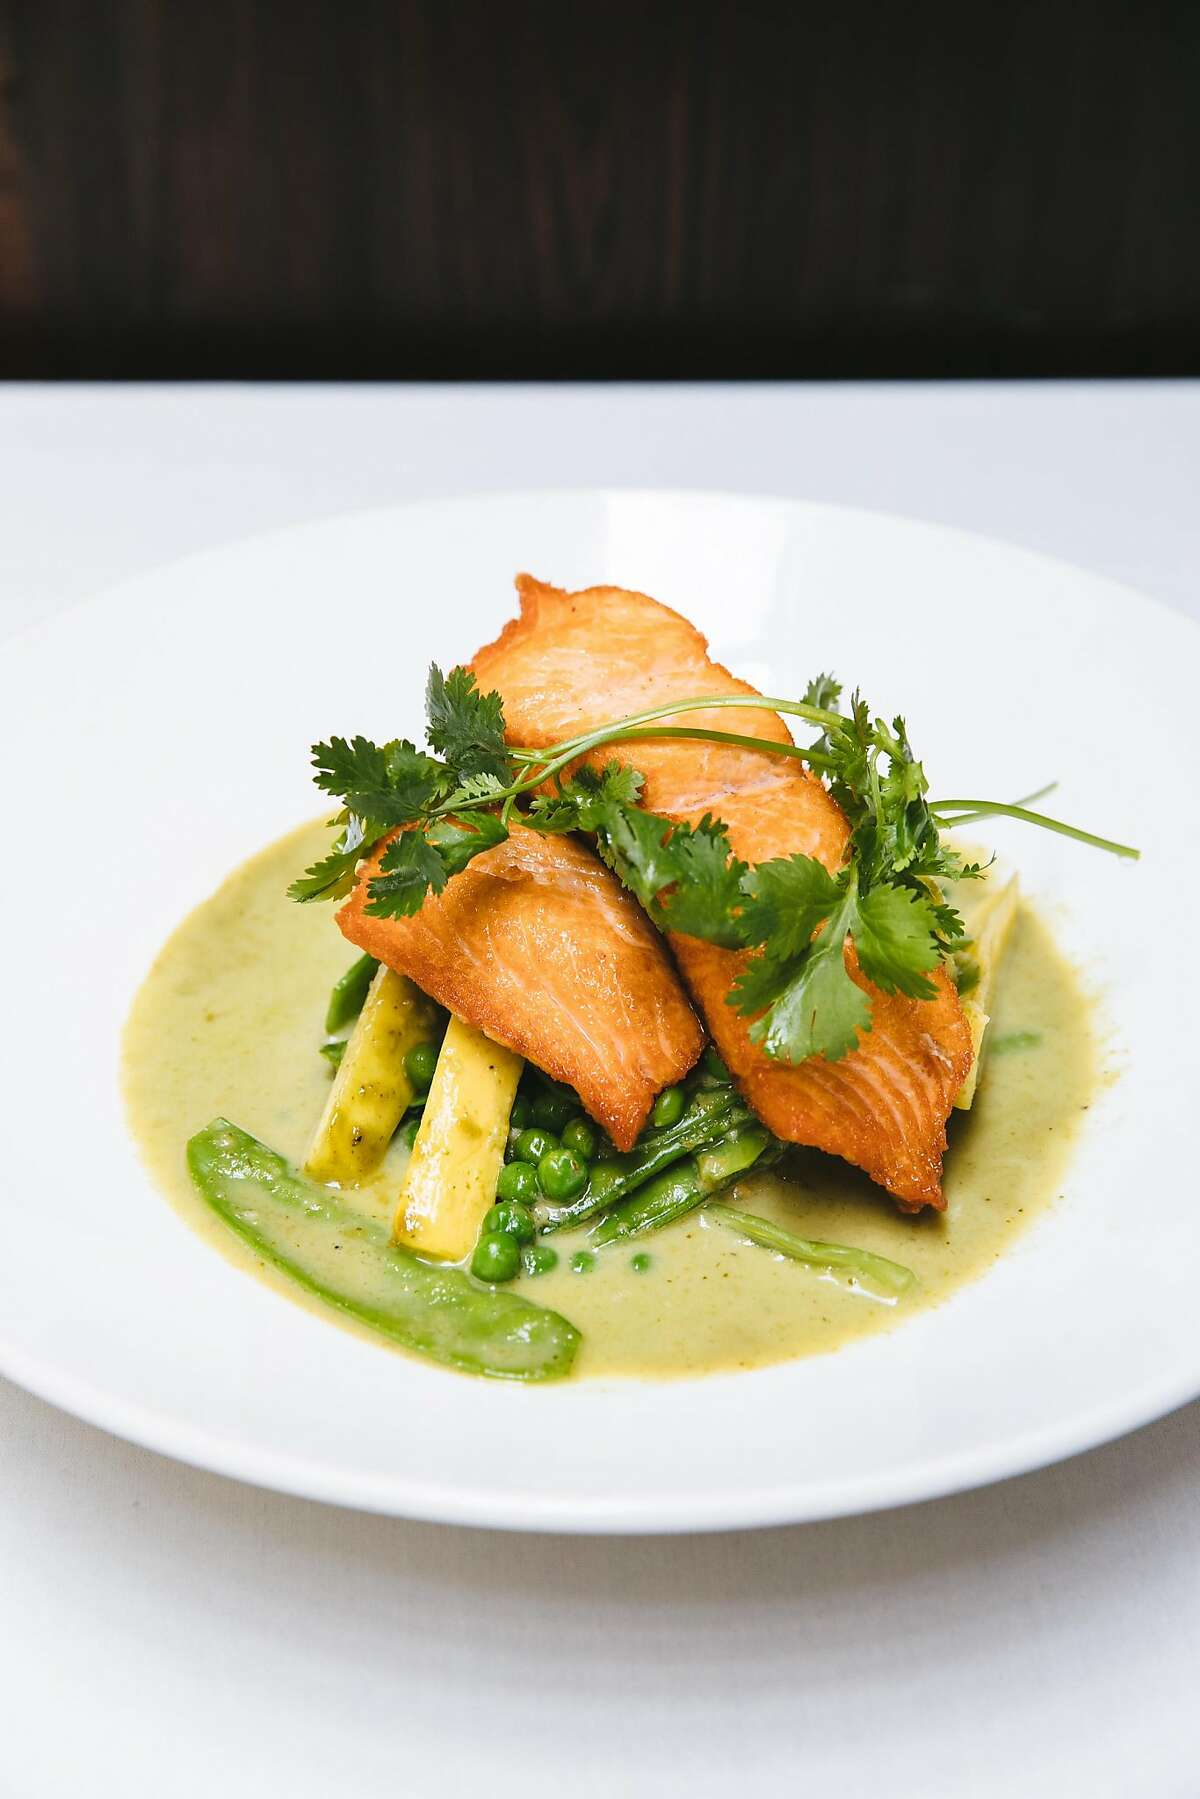 Pan-seared salmon served on homemade Thai seafood curry photographed at Lemon Grass in Sacramento, Calif. Tuesday, August 15, 2017.